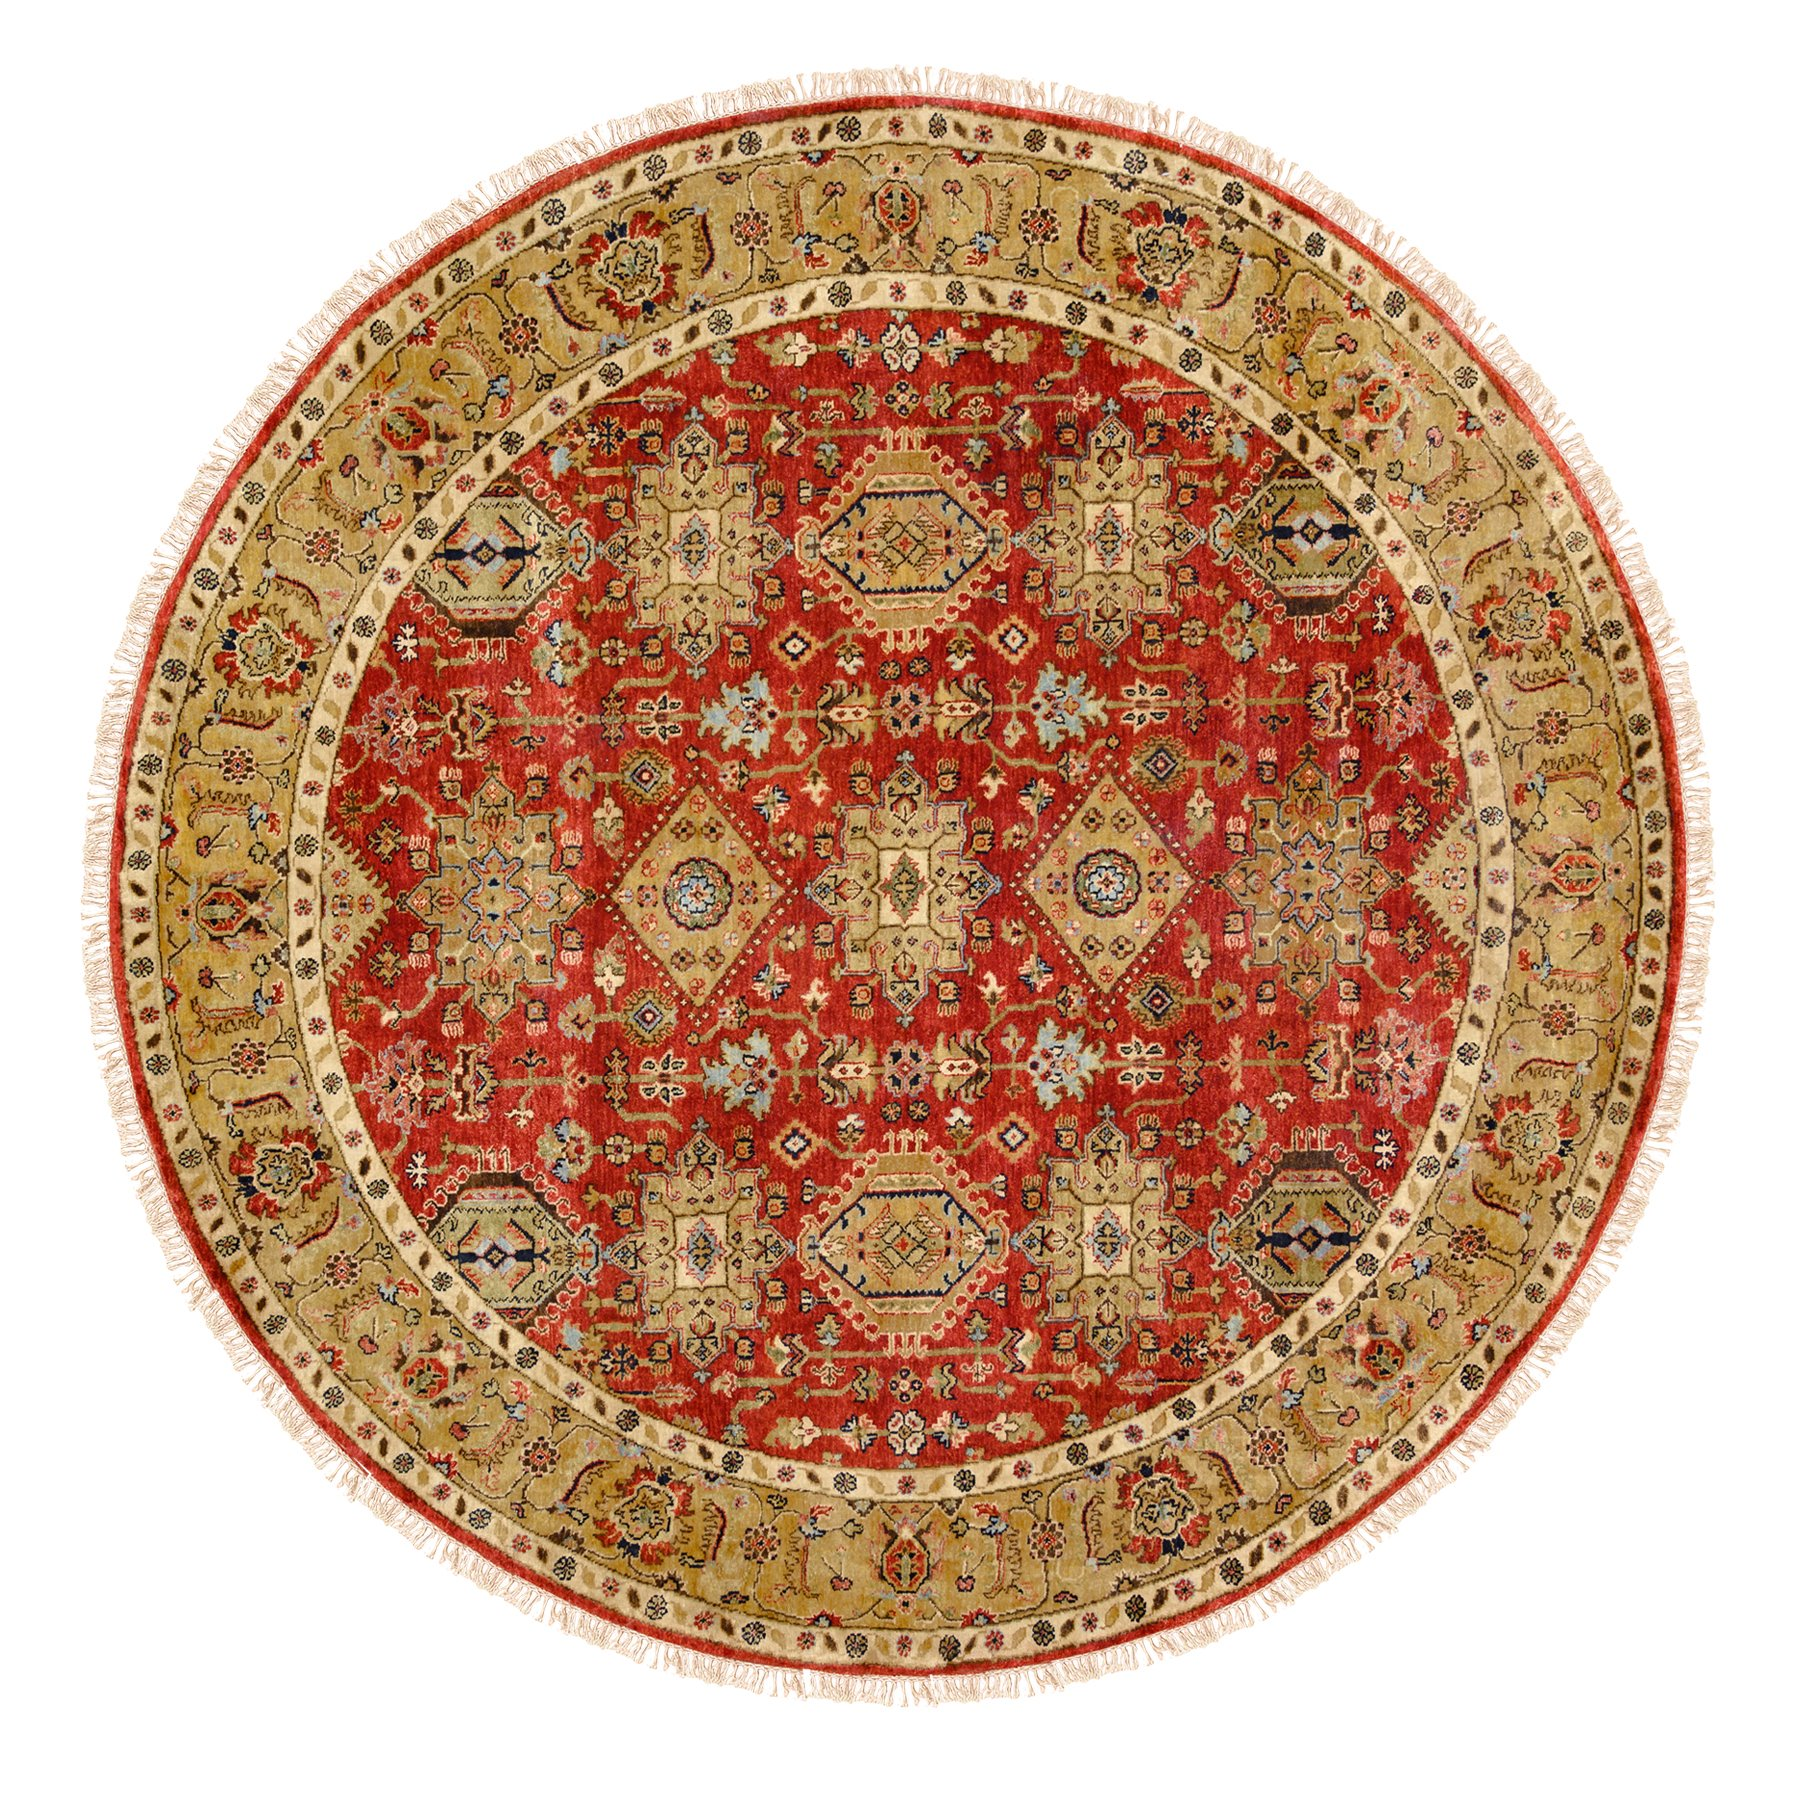 "7'9""x7'9"" Red Karajeh Design Hand Knotted Pure Wool Oriental Round Rug"